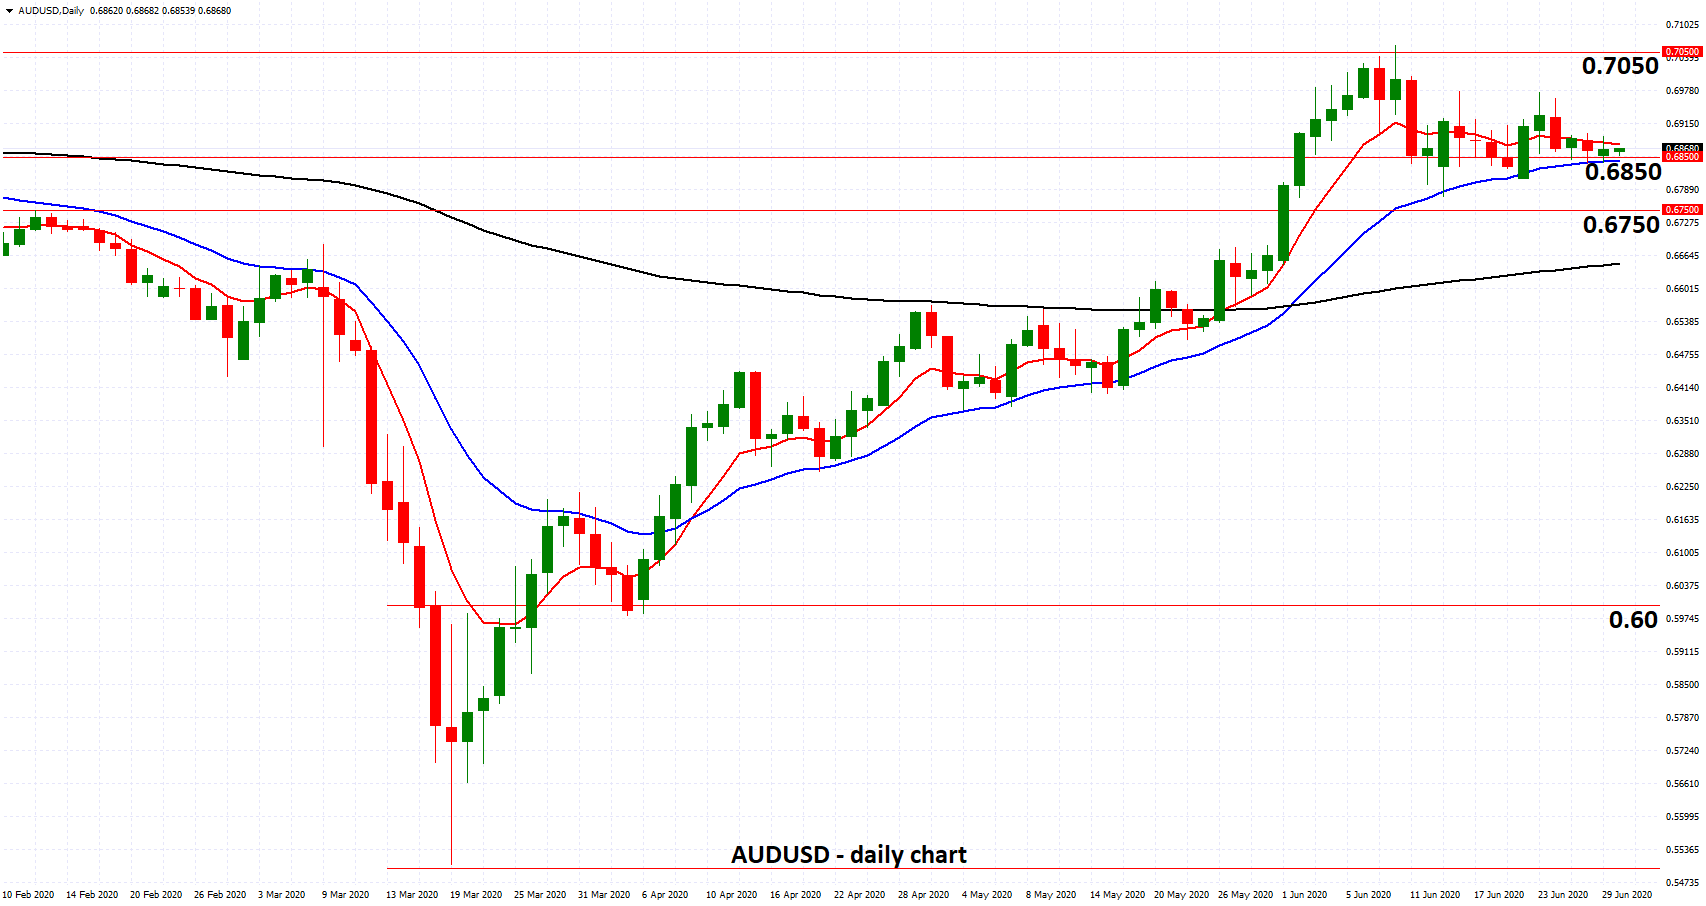 AUDUSD - Settles Around Key 0.6850 Level as RBA Warns of Coronavirus Shadow